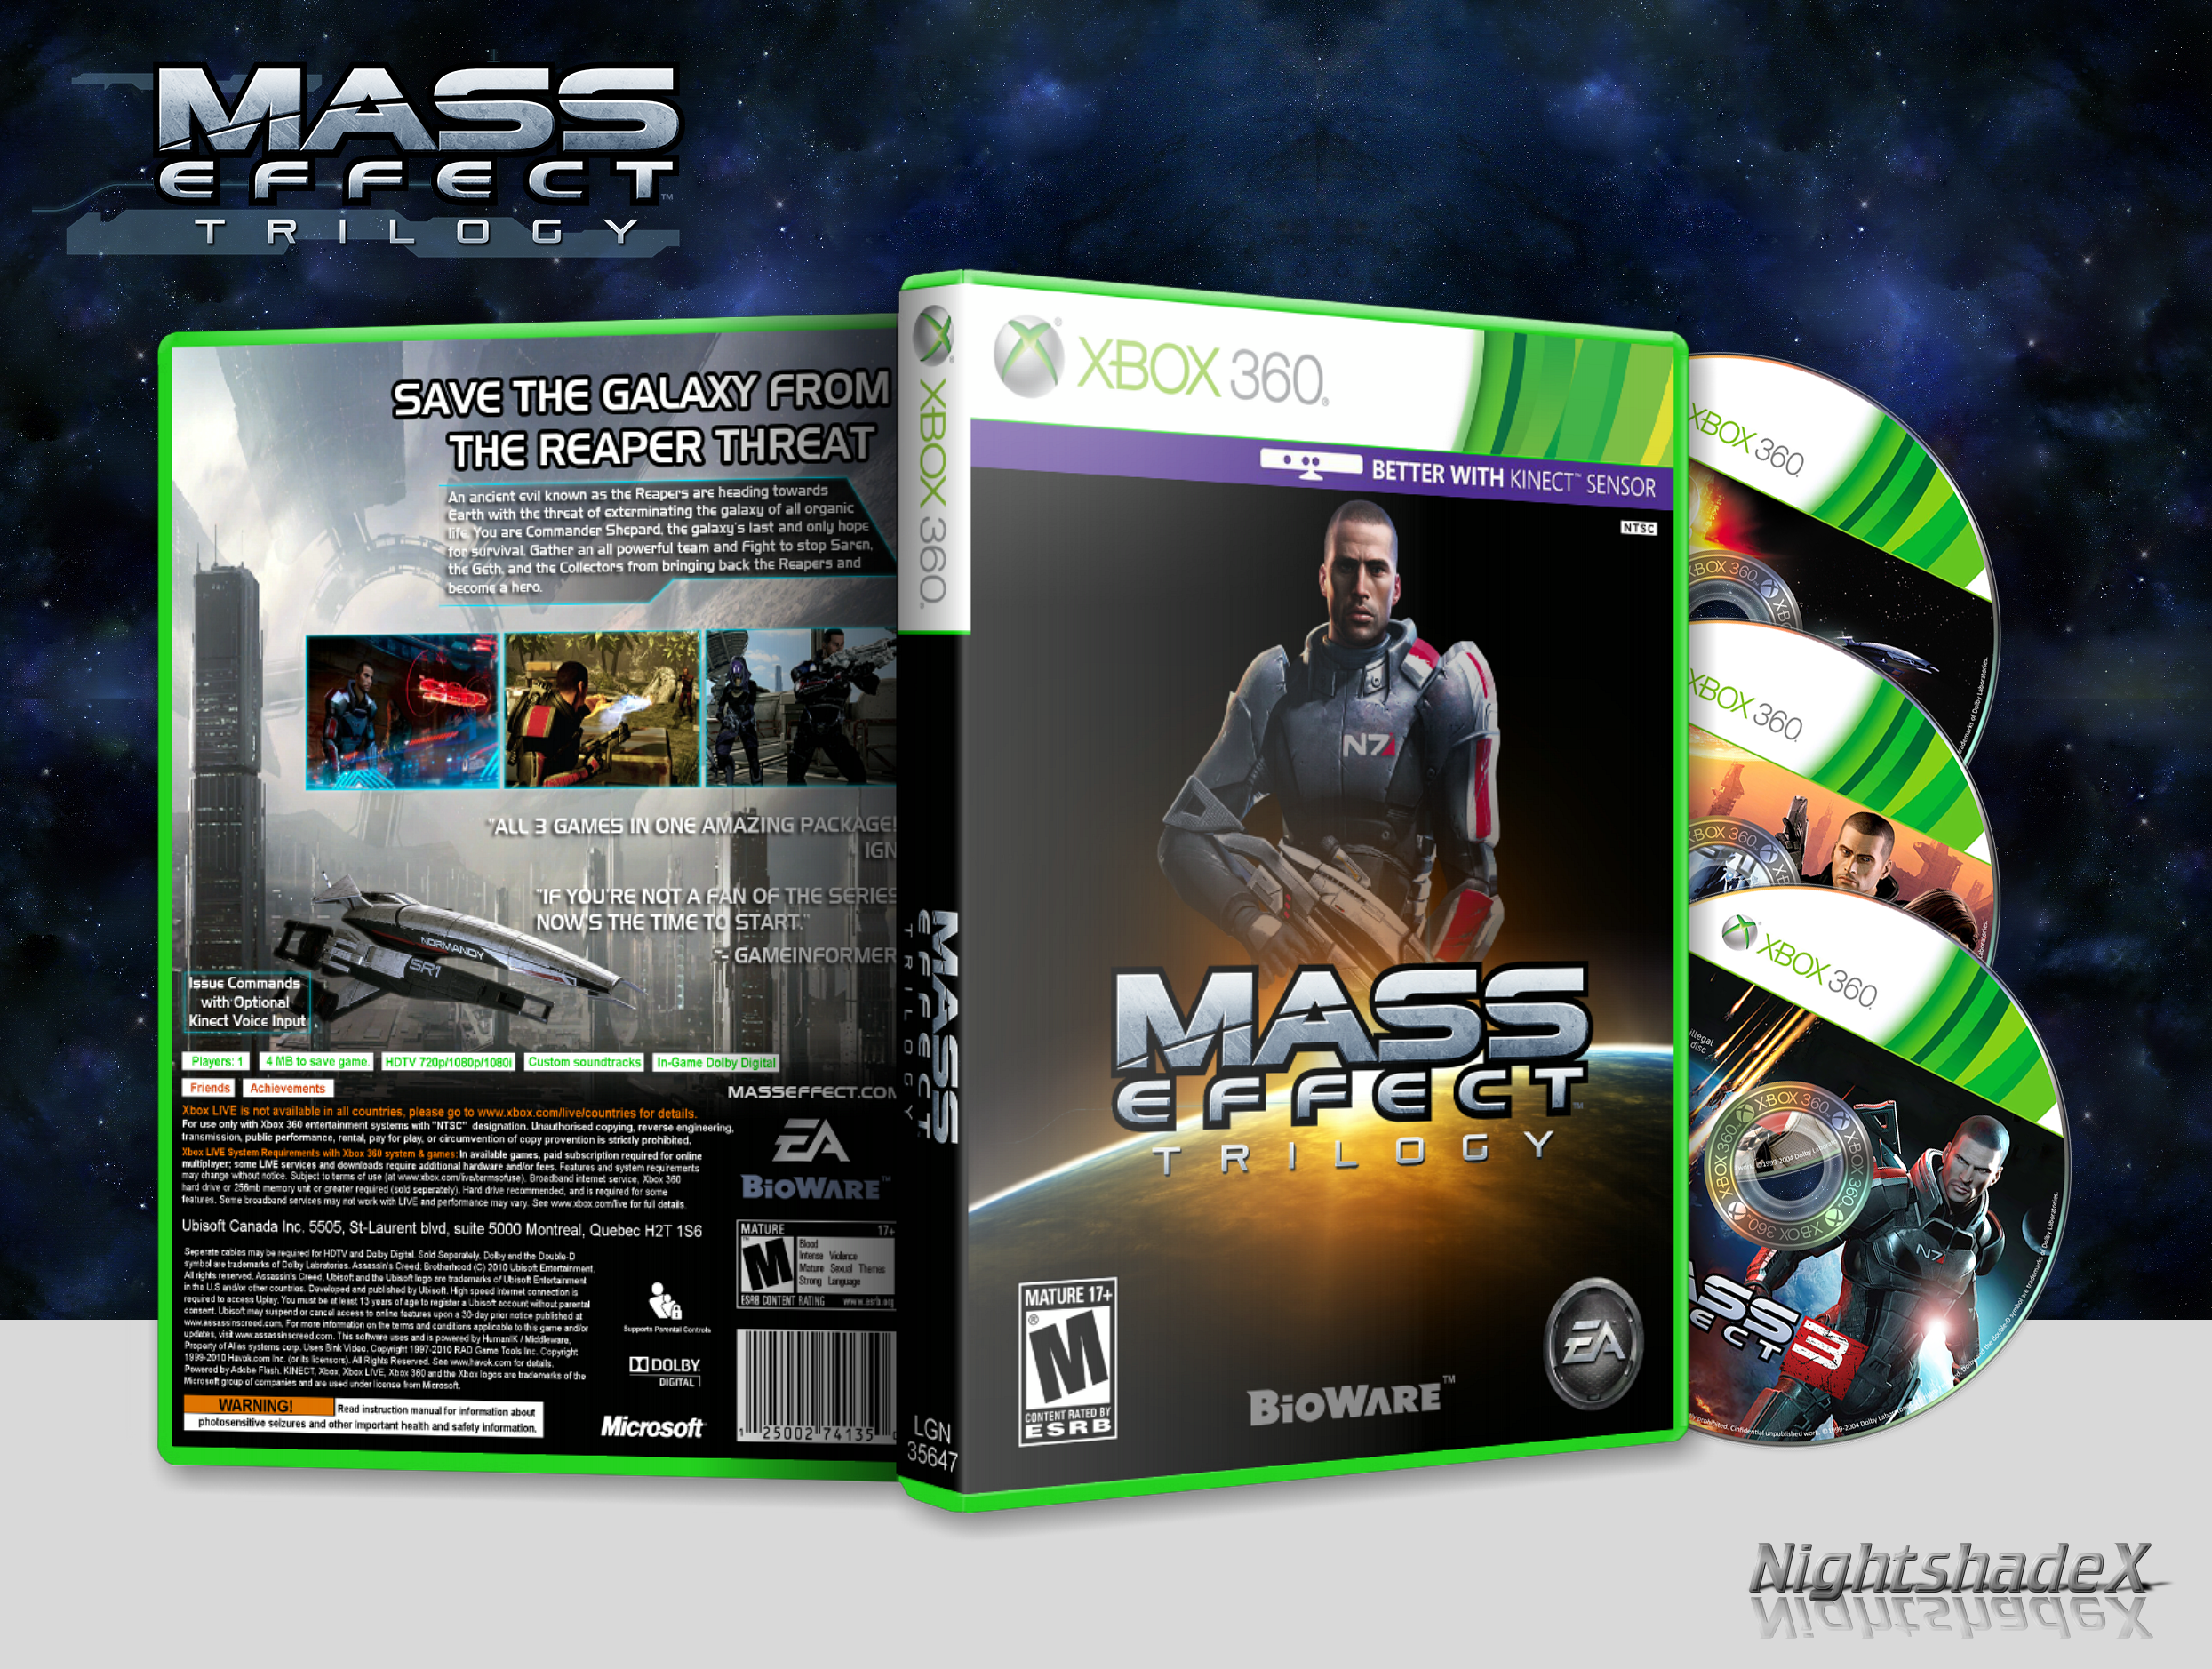 Mass Effect: Trilogy box cover